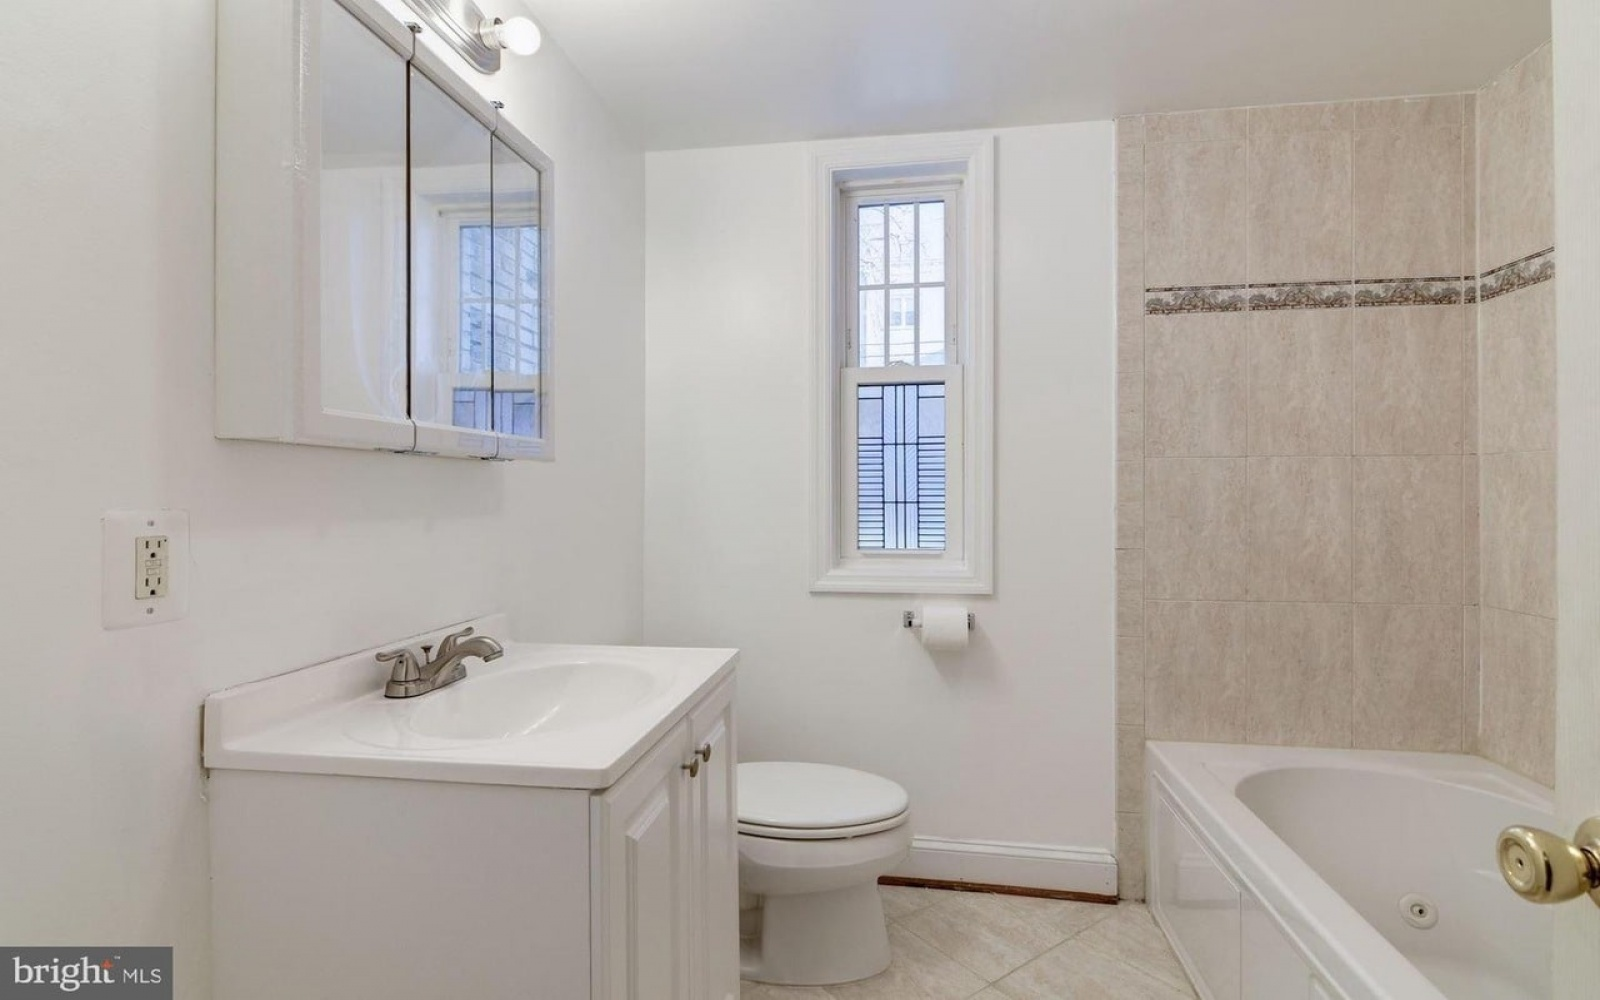 3874 9th St SE,Washington,District Of Columbia 20032,2 Bedrooms Bedrooms,1 BathroomBathrooms,Apartment,9th,1196